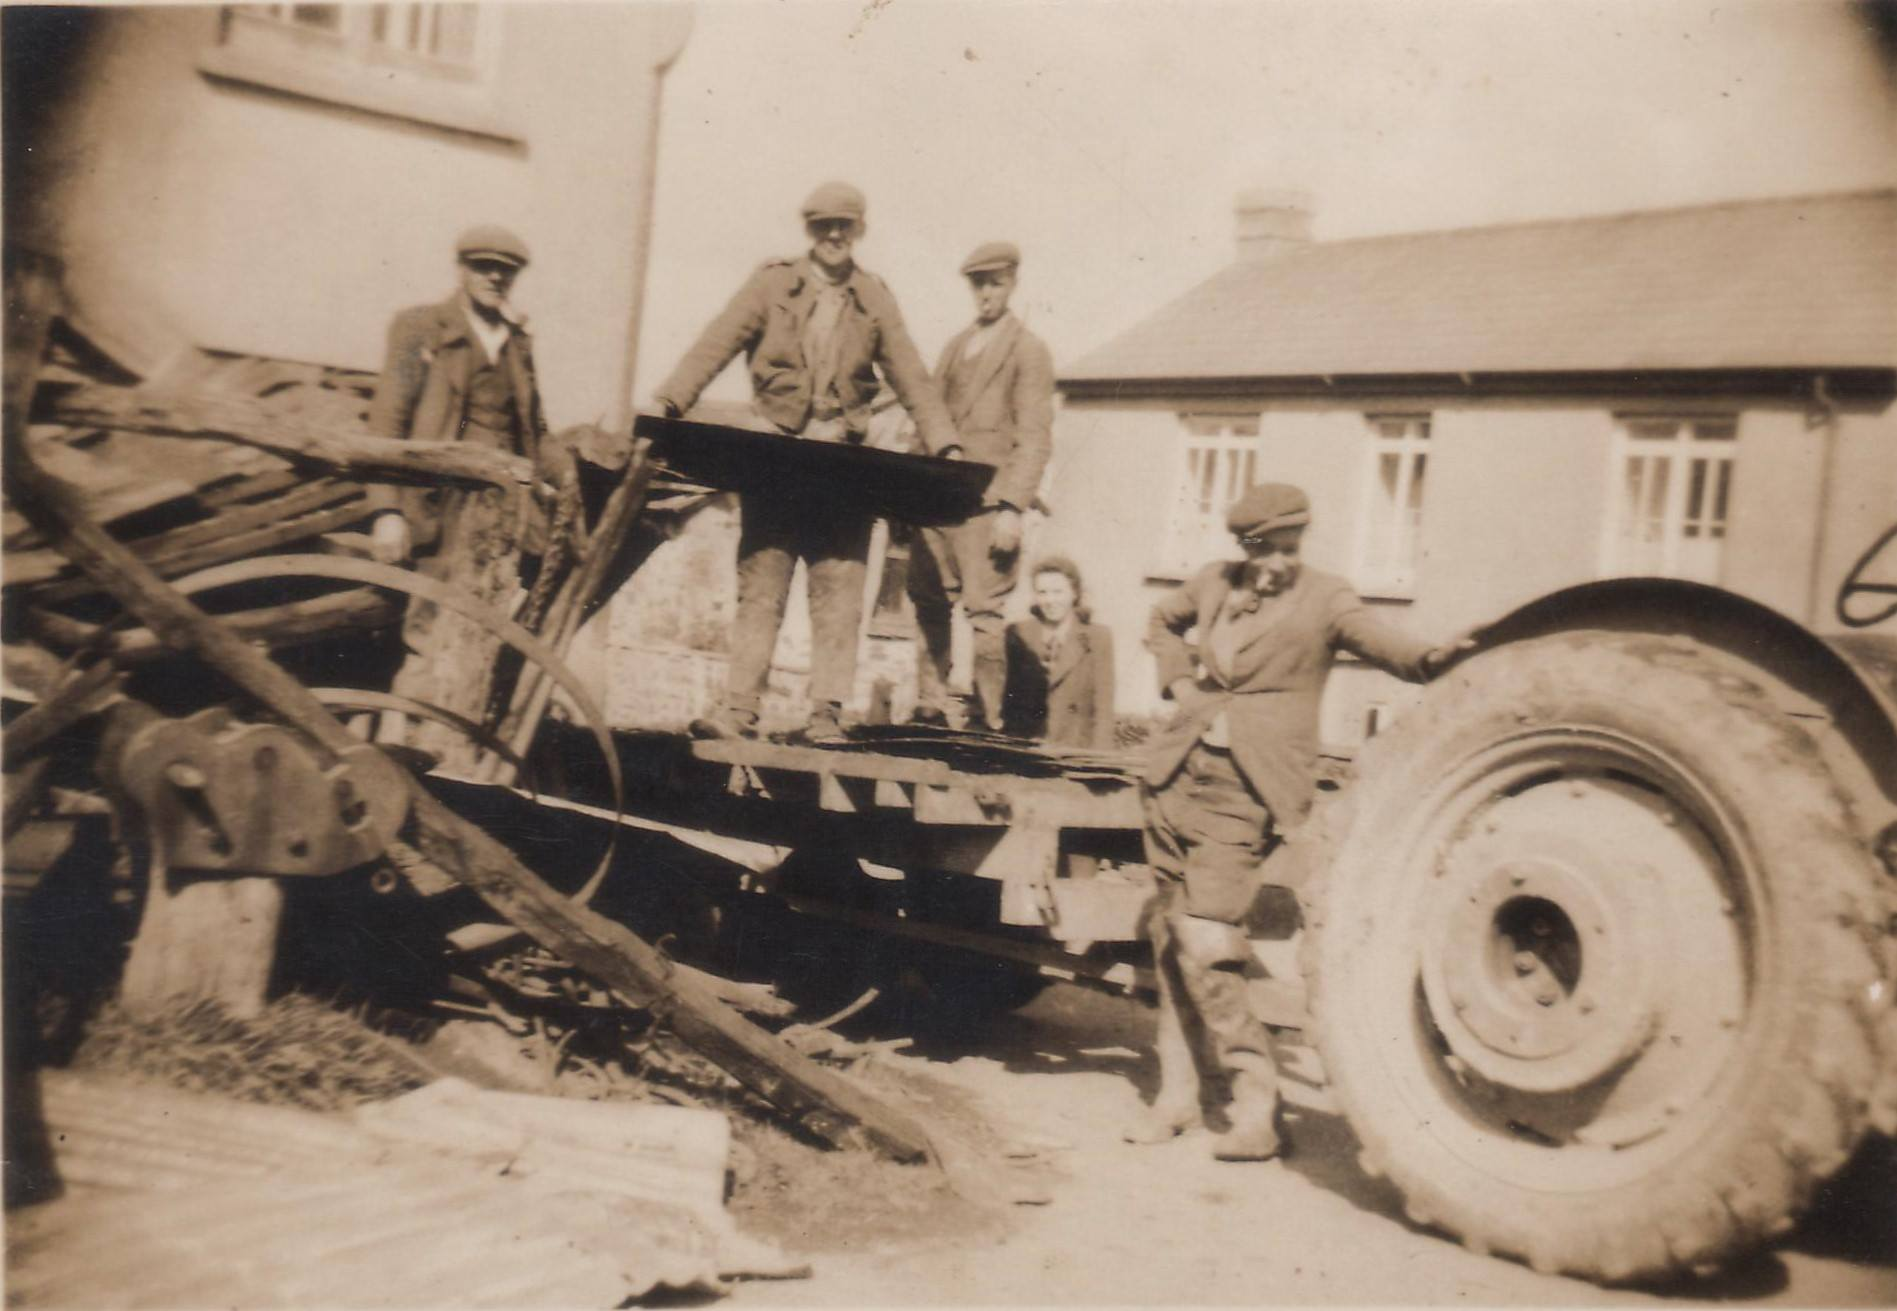 Clearing up W. Lakeman's Blacksmithy after its collapse Bill Tippett (by tractor) Walter Hicks & Bill & Frank Wickett. Photo courtesy of Gary Lashbrook.